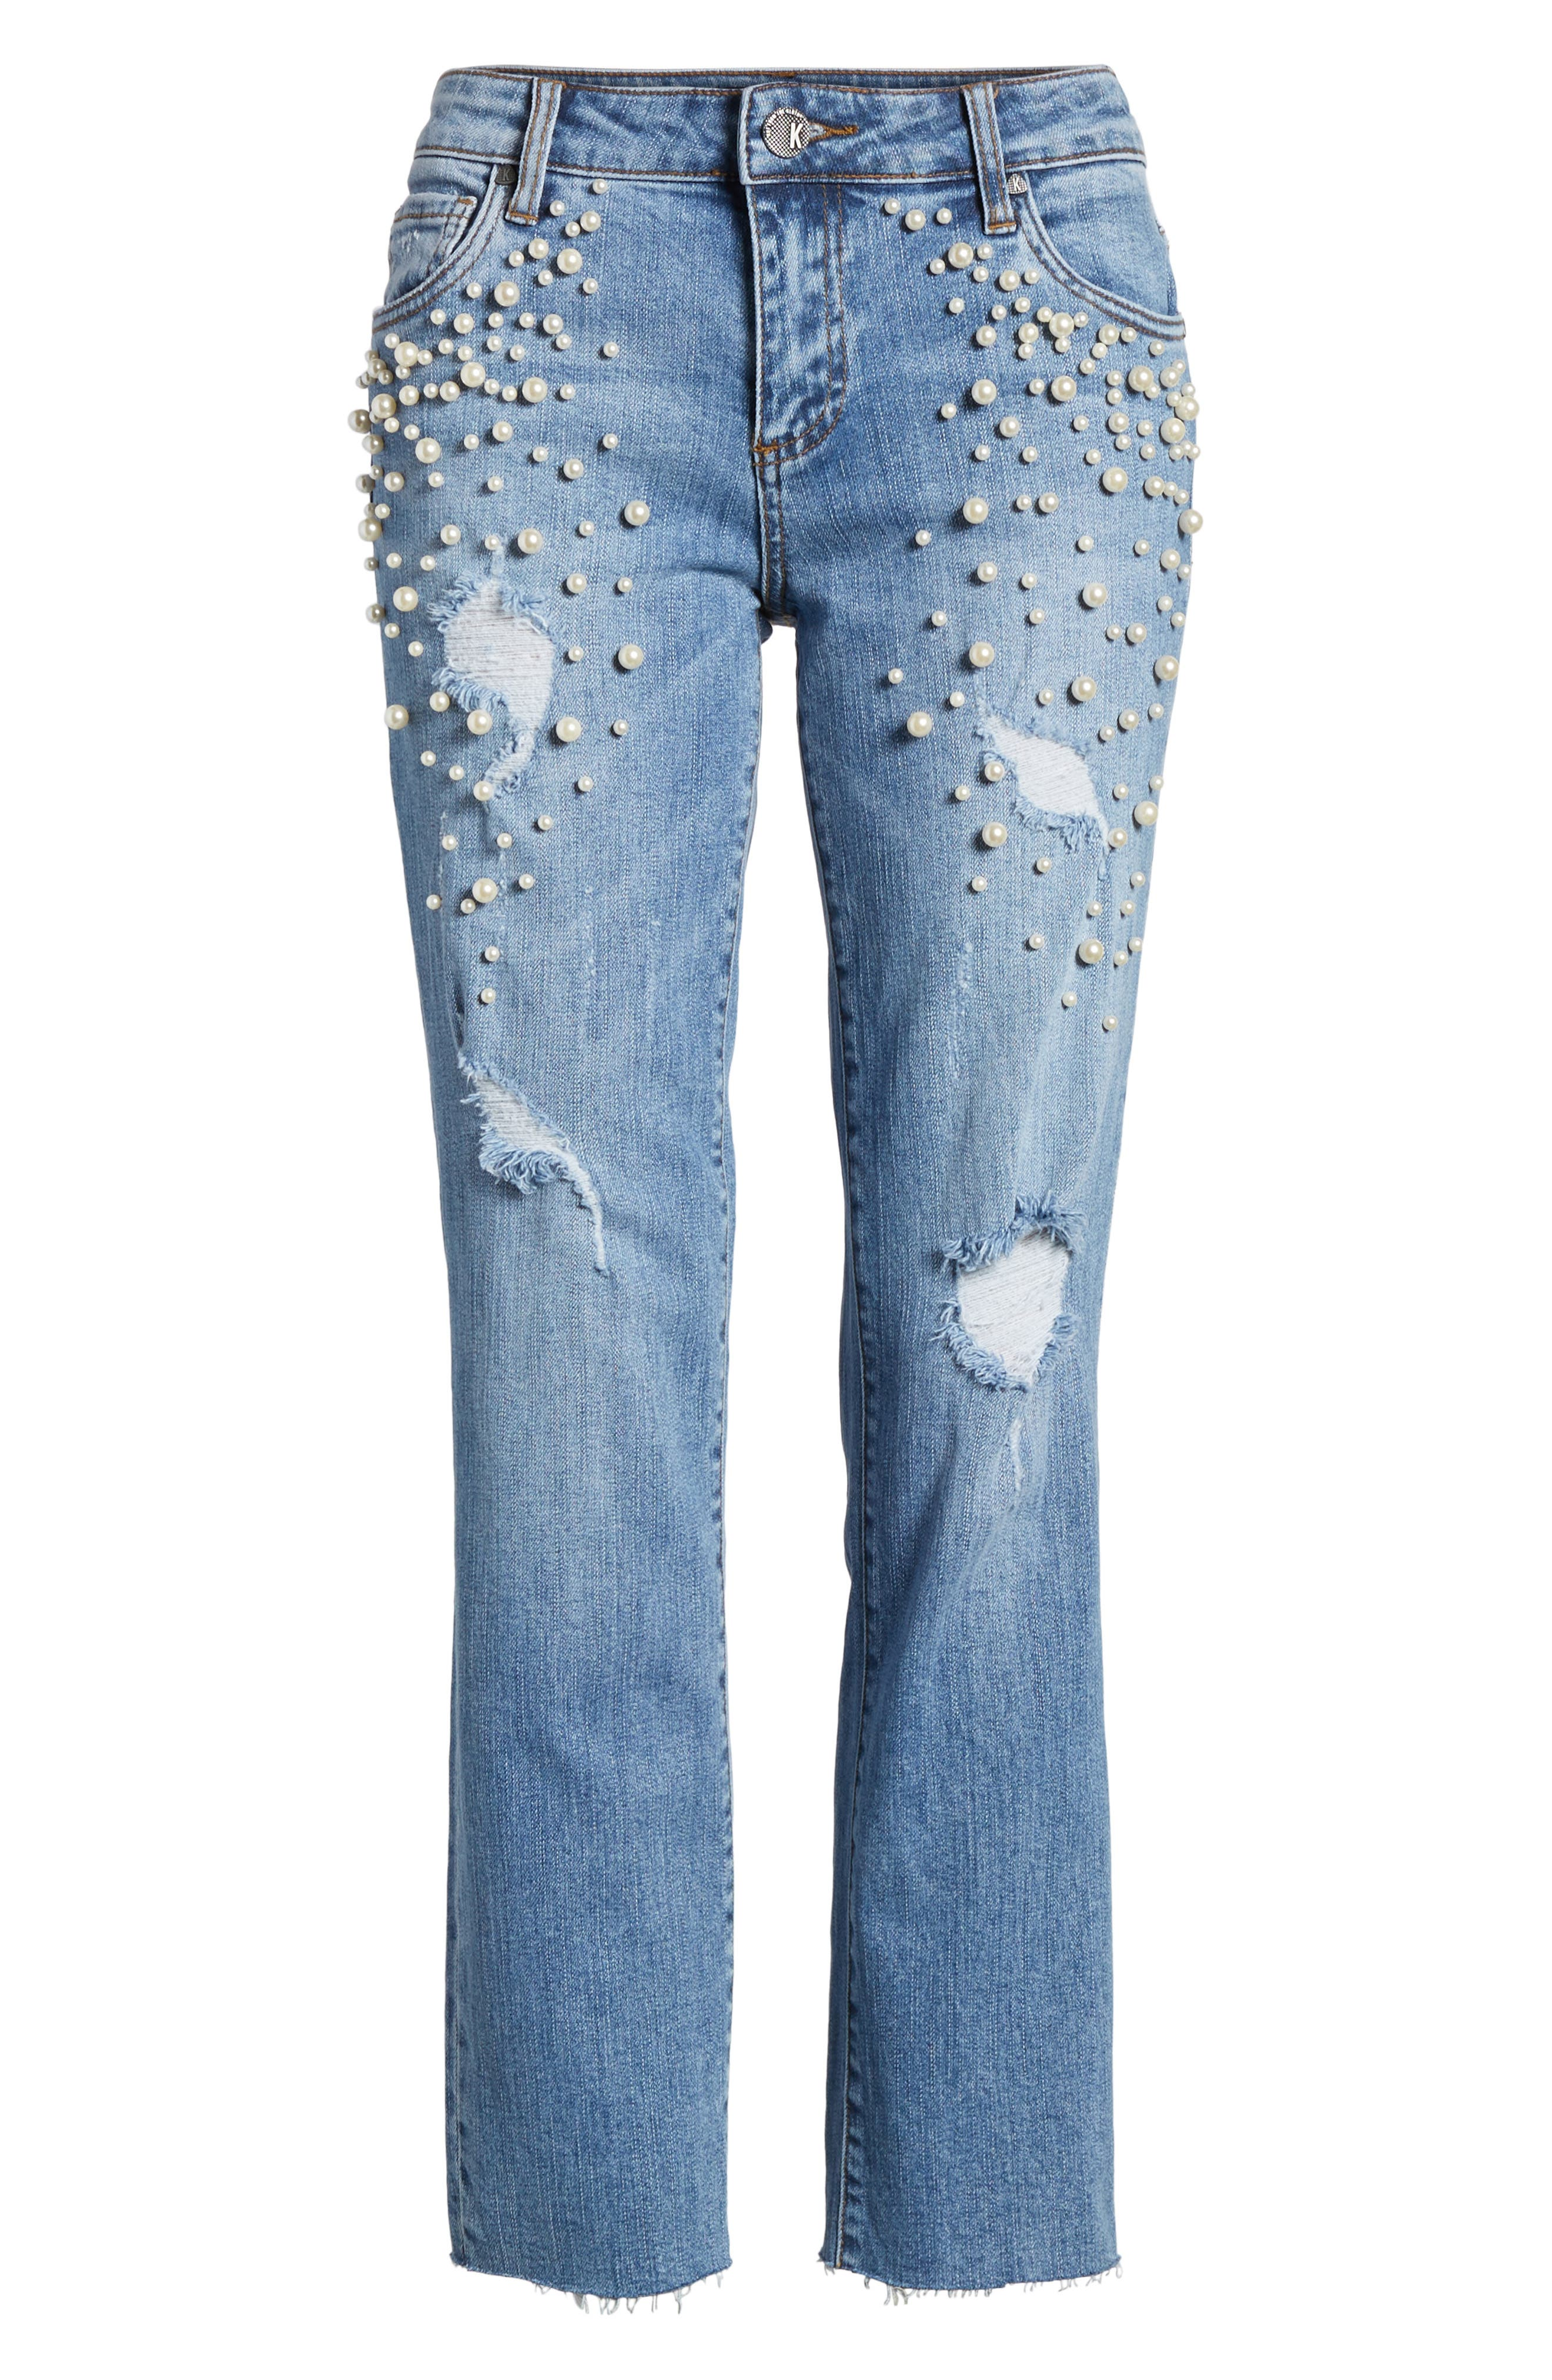 KUT FROM THE KLOTH,                             Reese Pearl Detail Raw Edge Jeans,                             Alternate thumbnail 6, color,                             439